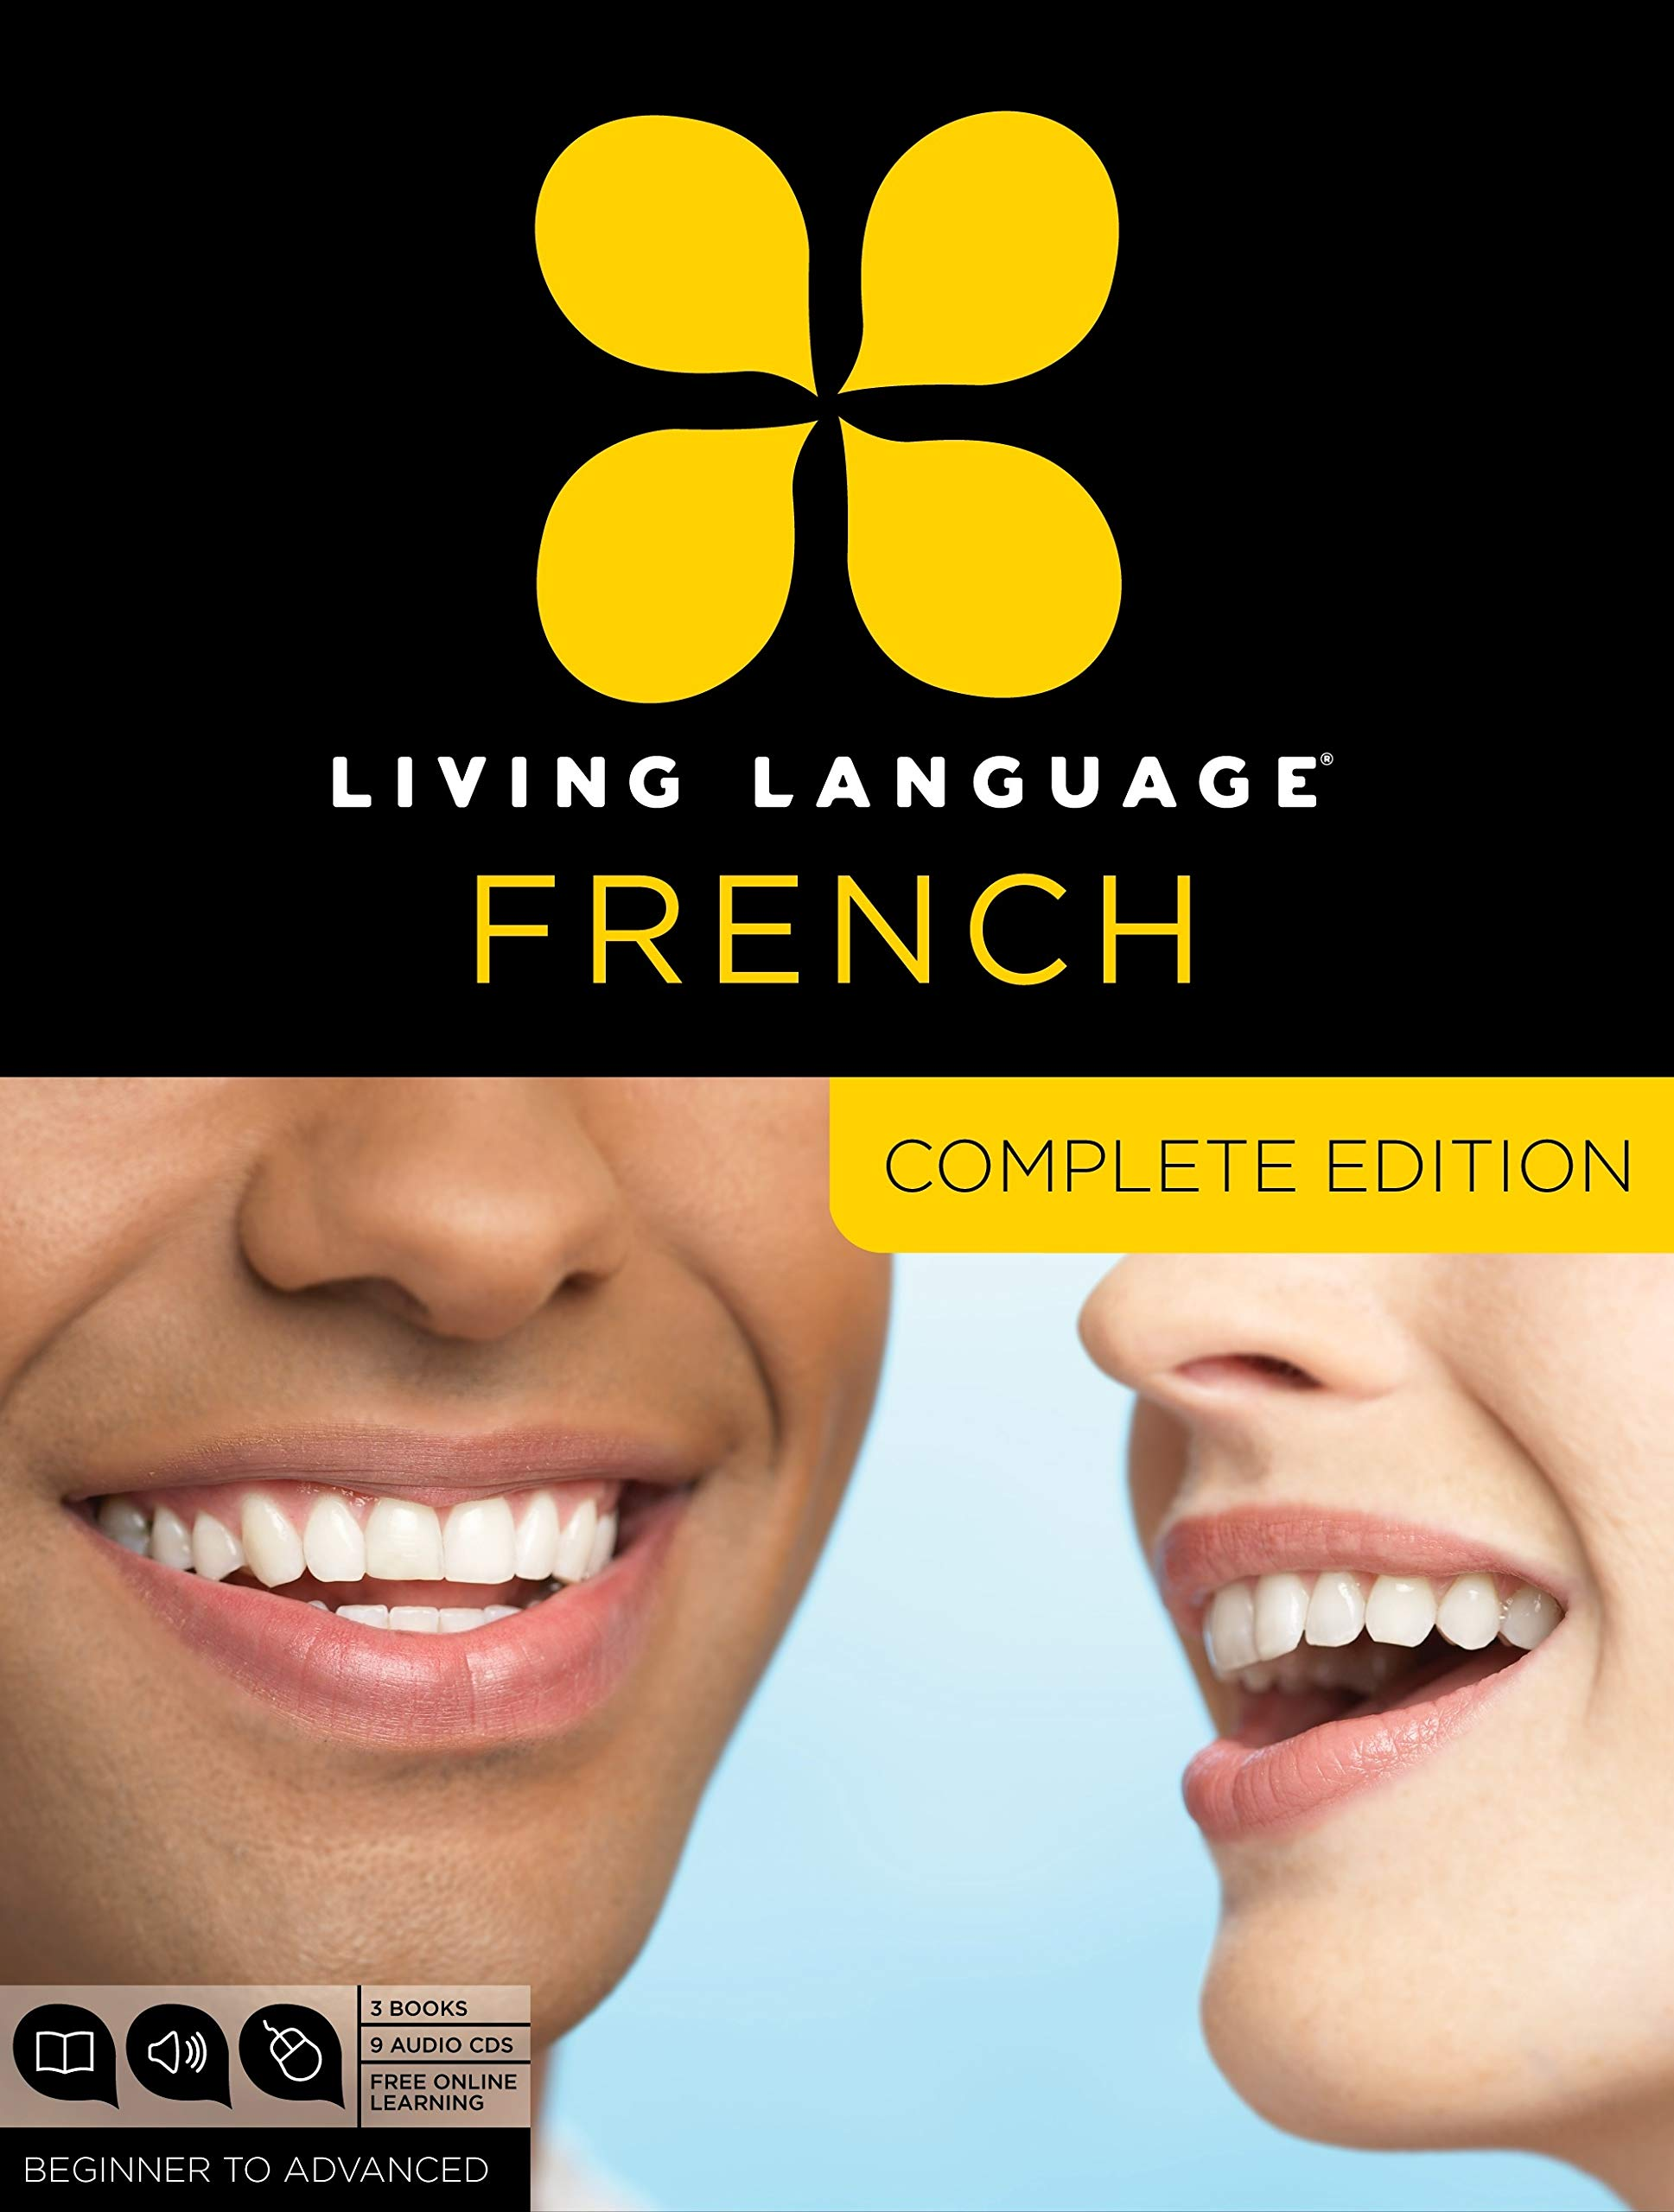 Living Language French, Complete Edition: Beginner through advanced course, including 3 coursebooks, 9 audio CDs, and free online learning by Living Language